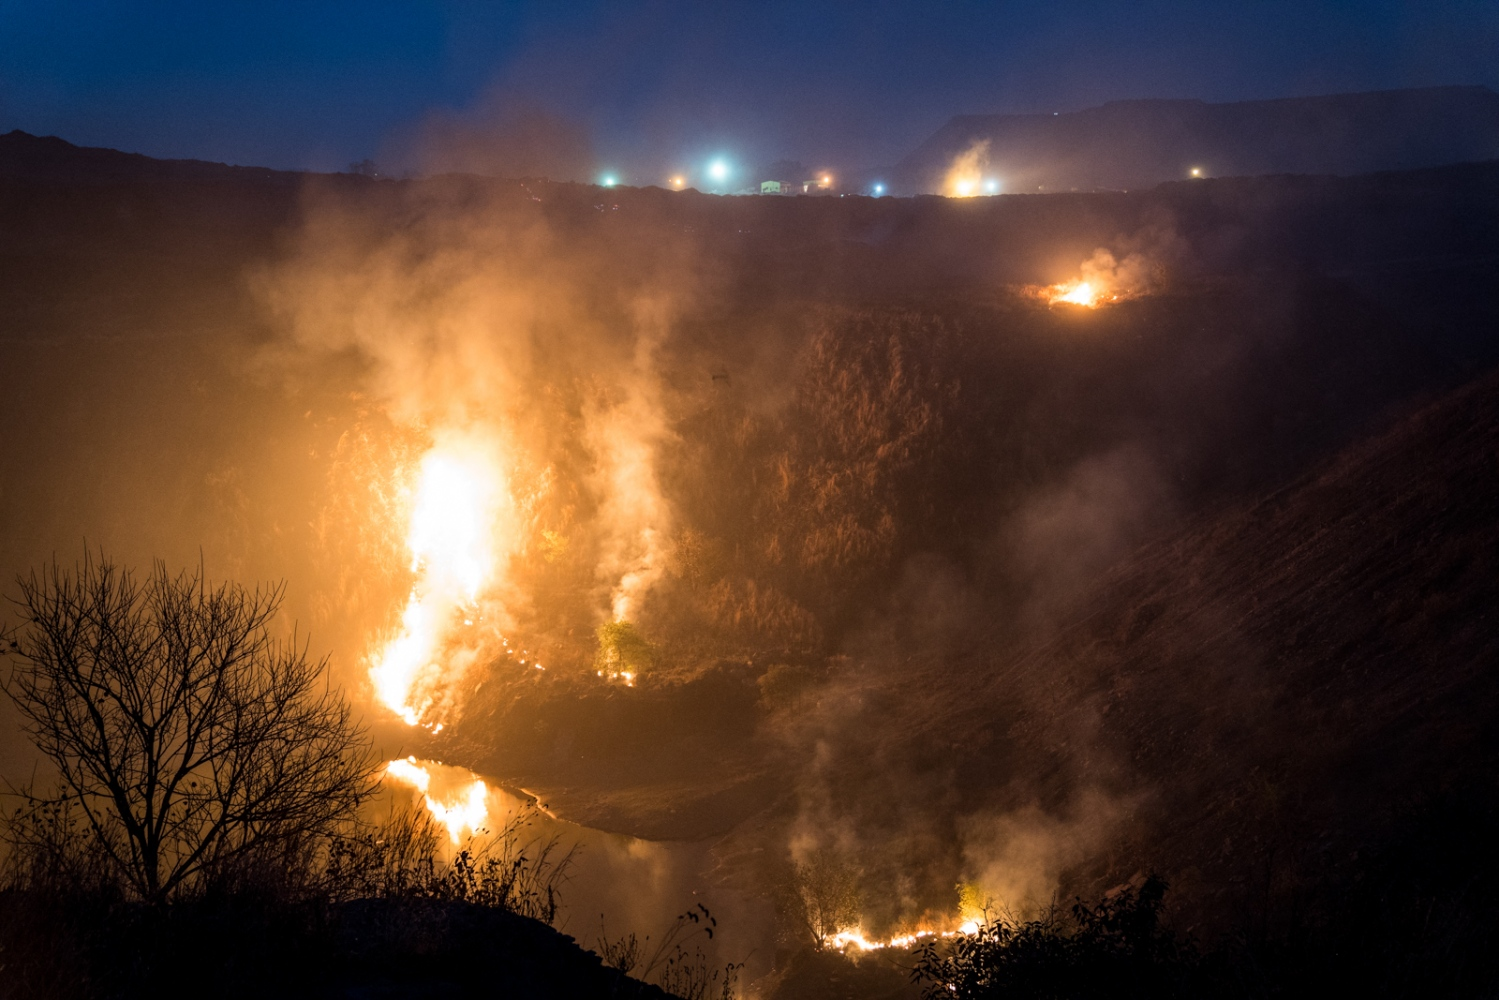 A coal mine on fire in Jharia releasing vast amounts of dangerous gases and particulates.